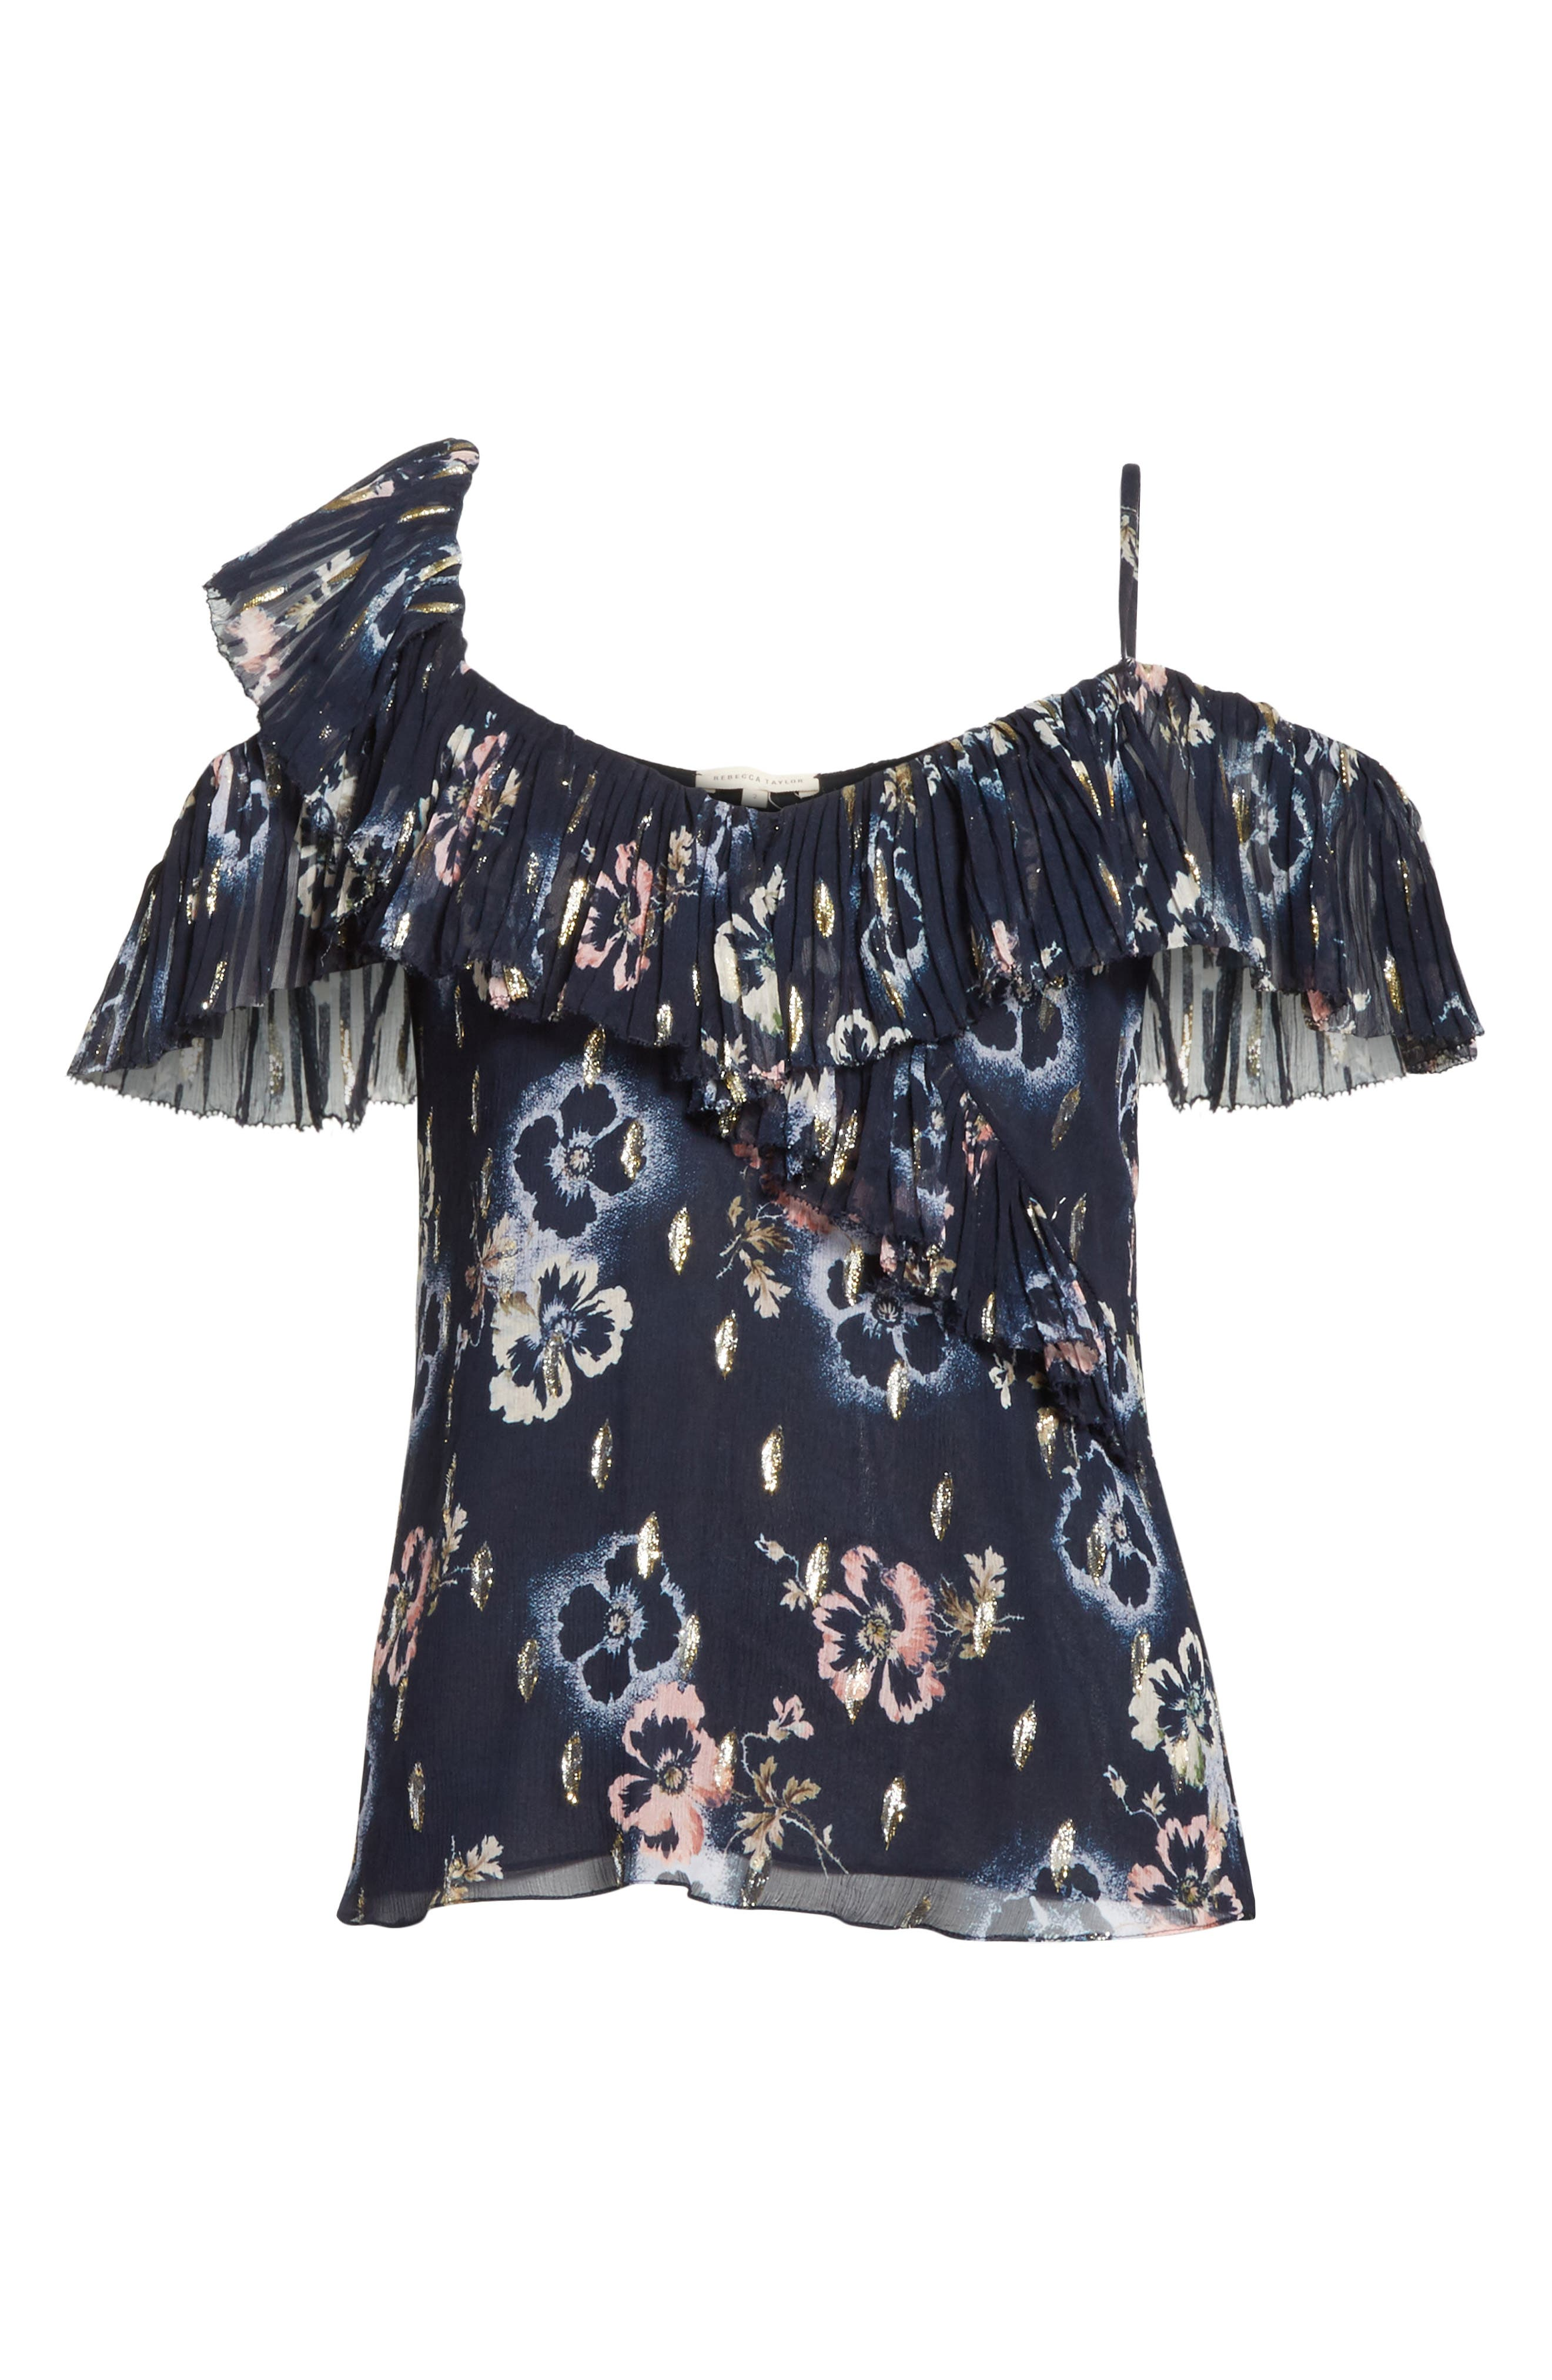 Faded Floral Top,                             Alternate thumbnail 6, color,                             410